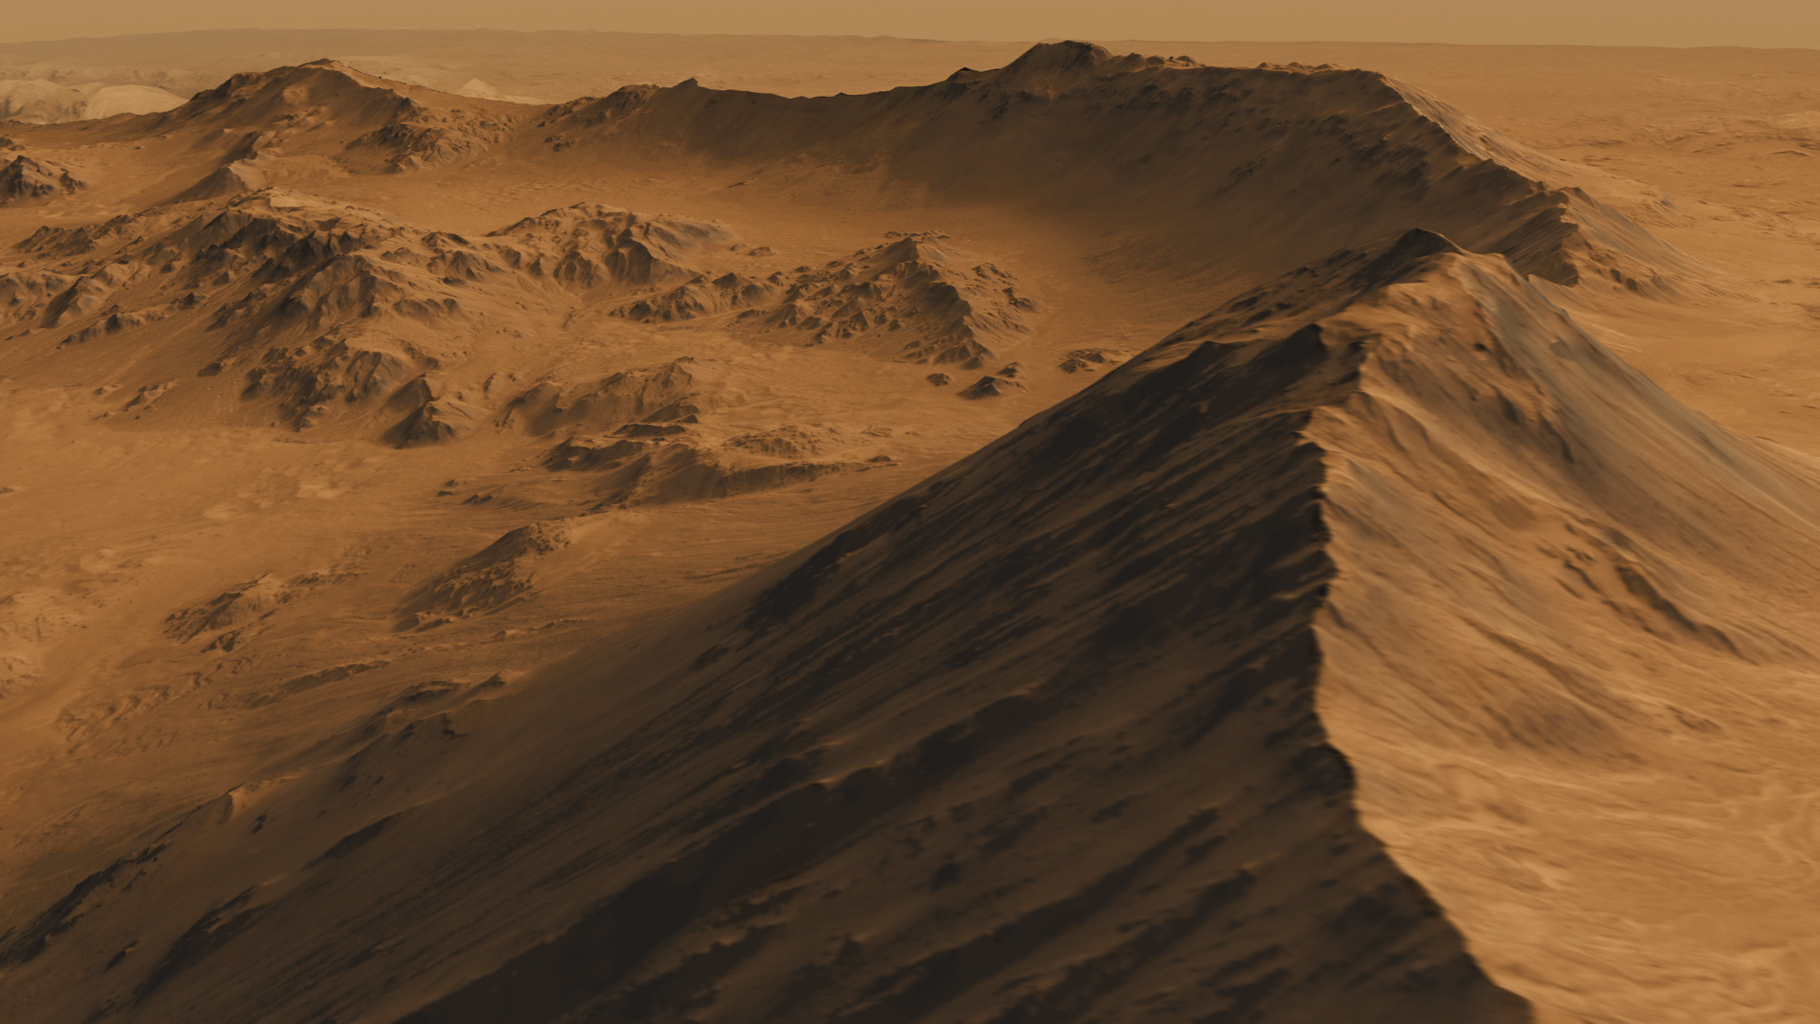 This is a screen shot from a high-definition simulated movie of Mojave Crater on Mars, based on images taken by the High Resolution Imaging Science Experiment (HiRISE) camera on NASA's Mars Reconnaissance Orbiter.